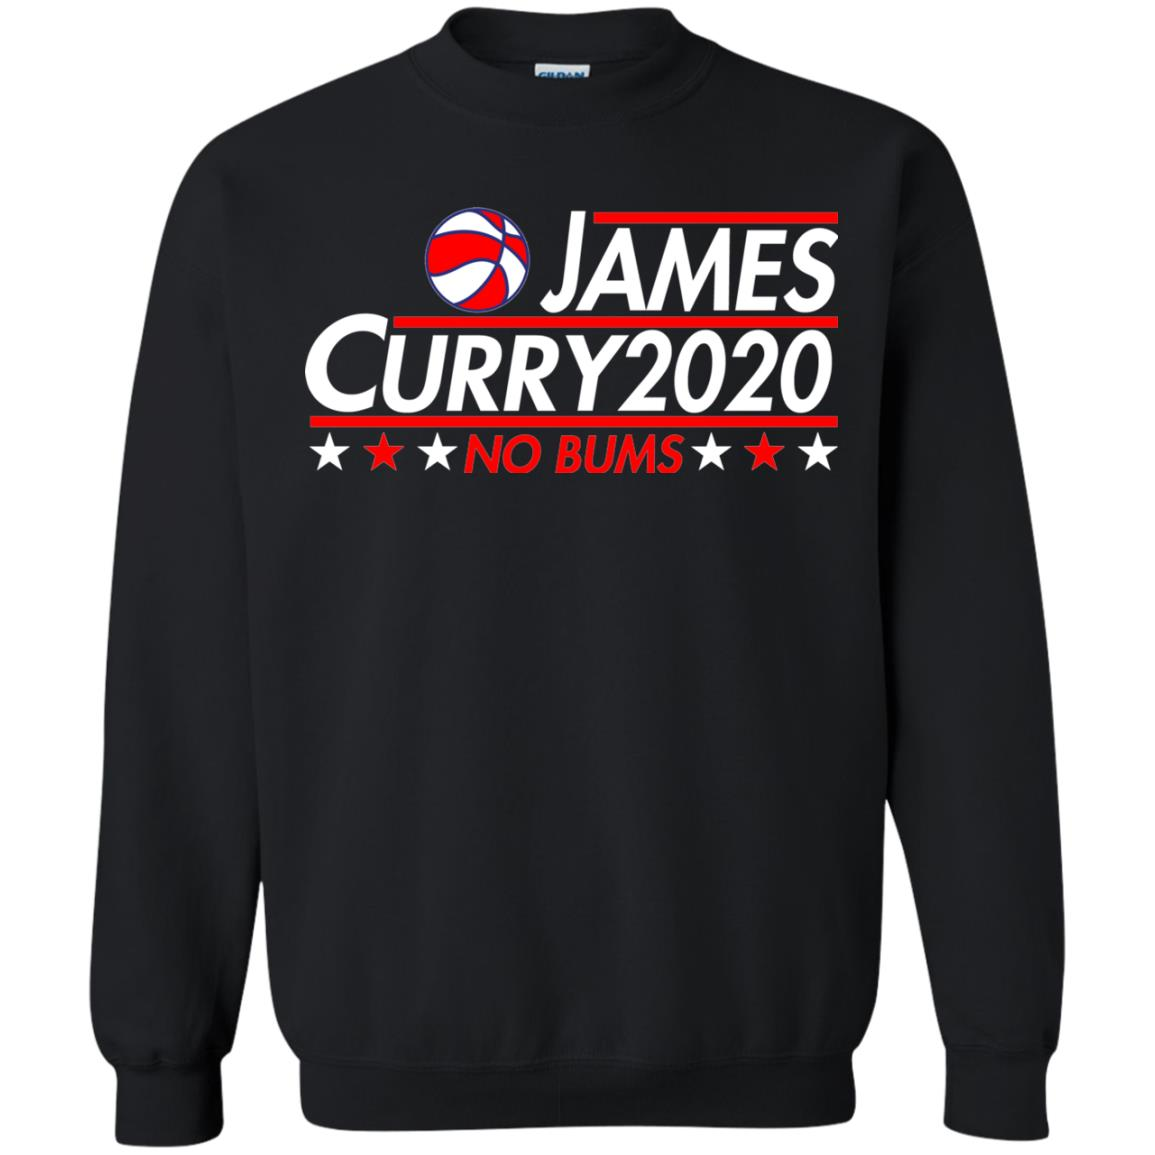 image 2172 - James Curry 2020 shirt No Bums: James & Curry for President